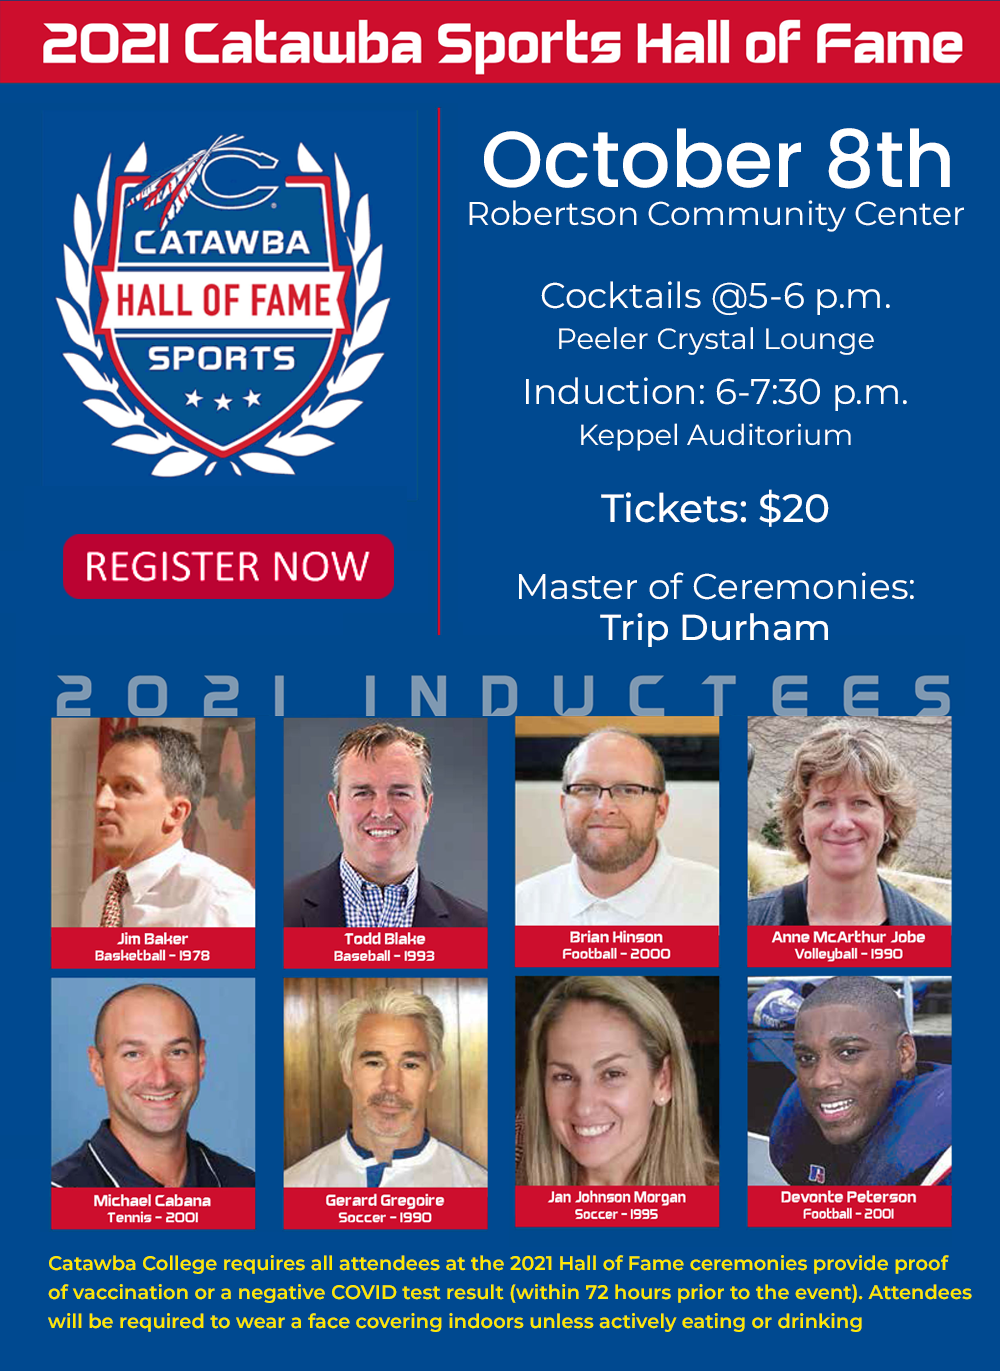 Catawba College Sports Hall of Fame 2021